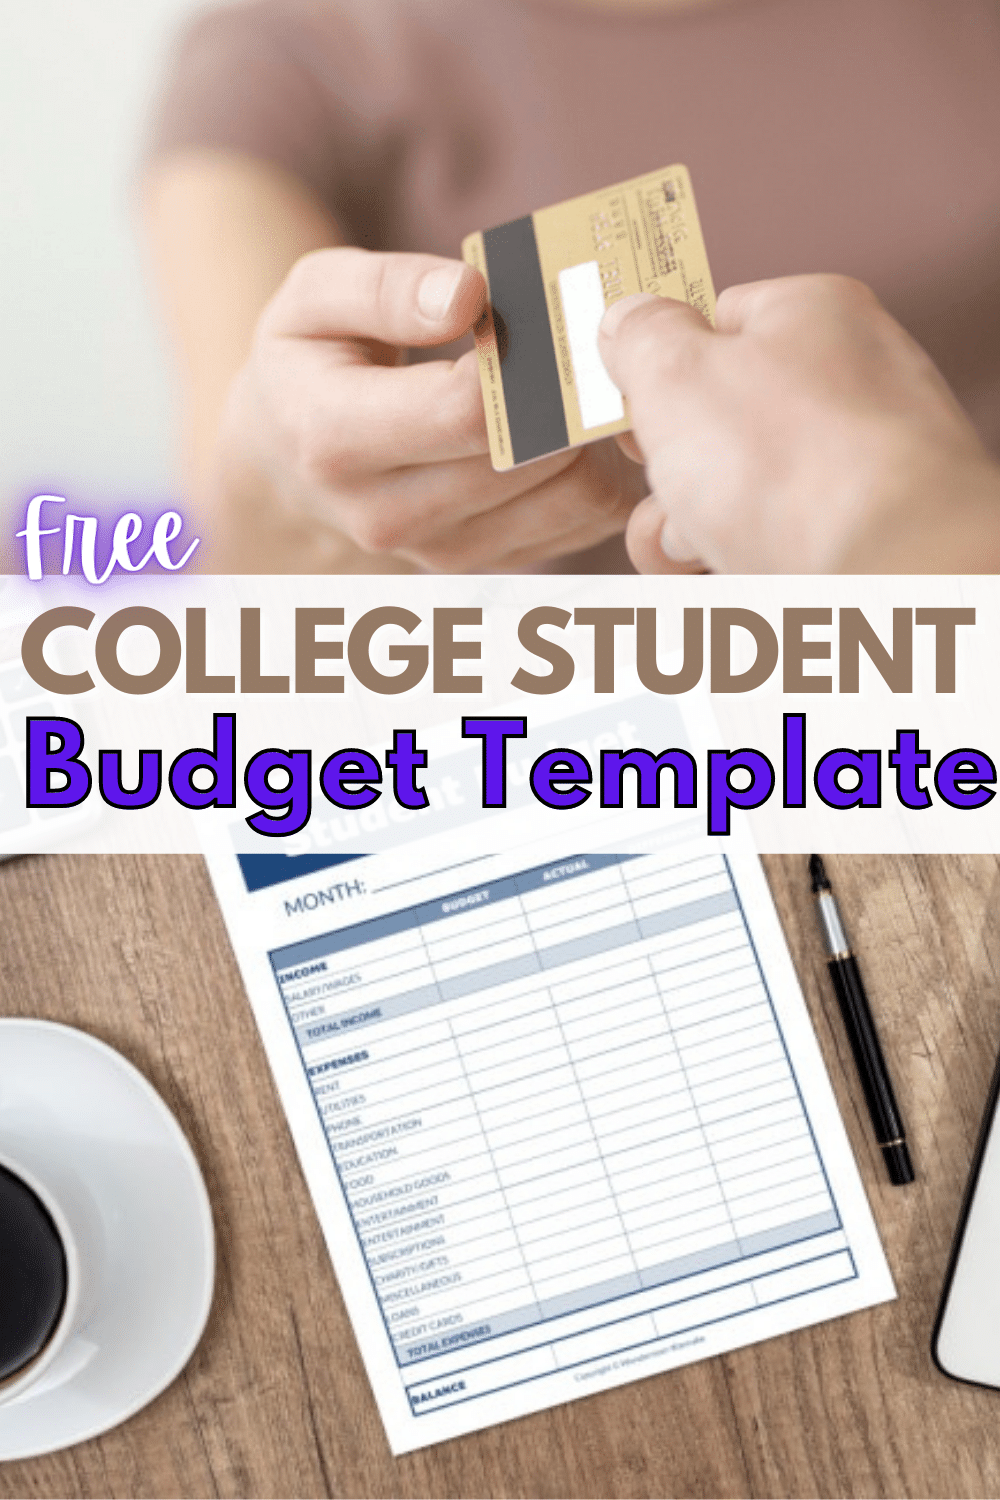 This college student budget template is an easy and effective tool for managing money in college. Plus free printable budget worksheet for college students. #budget #collegestudent #budgetworksheet #printable via @wondermomwannab